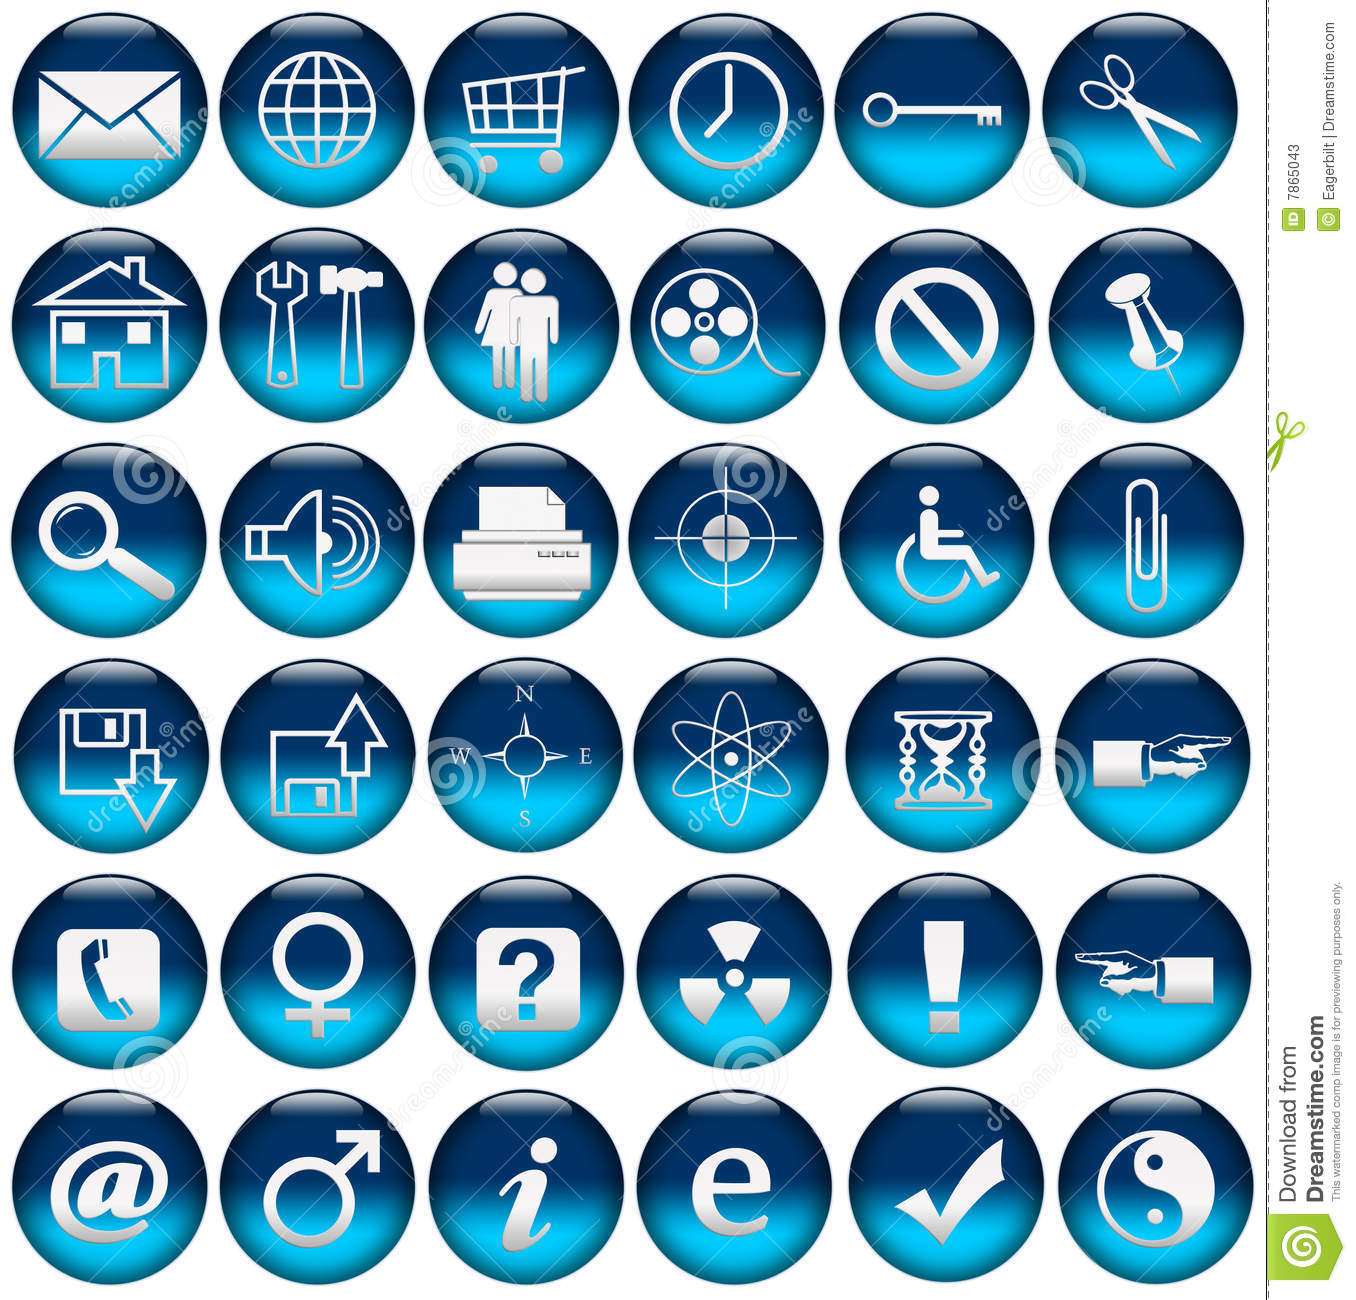 Blue Web Icons/Buttons Stock Photos - Image: 7865043